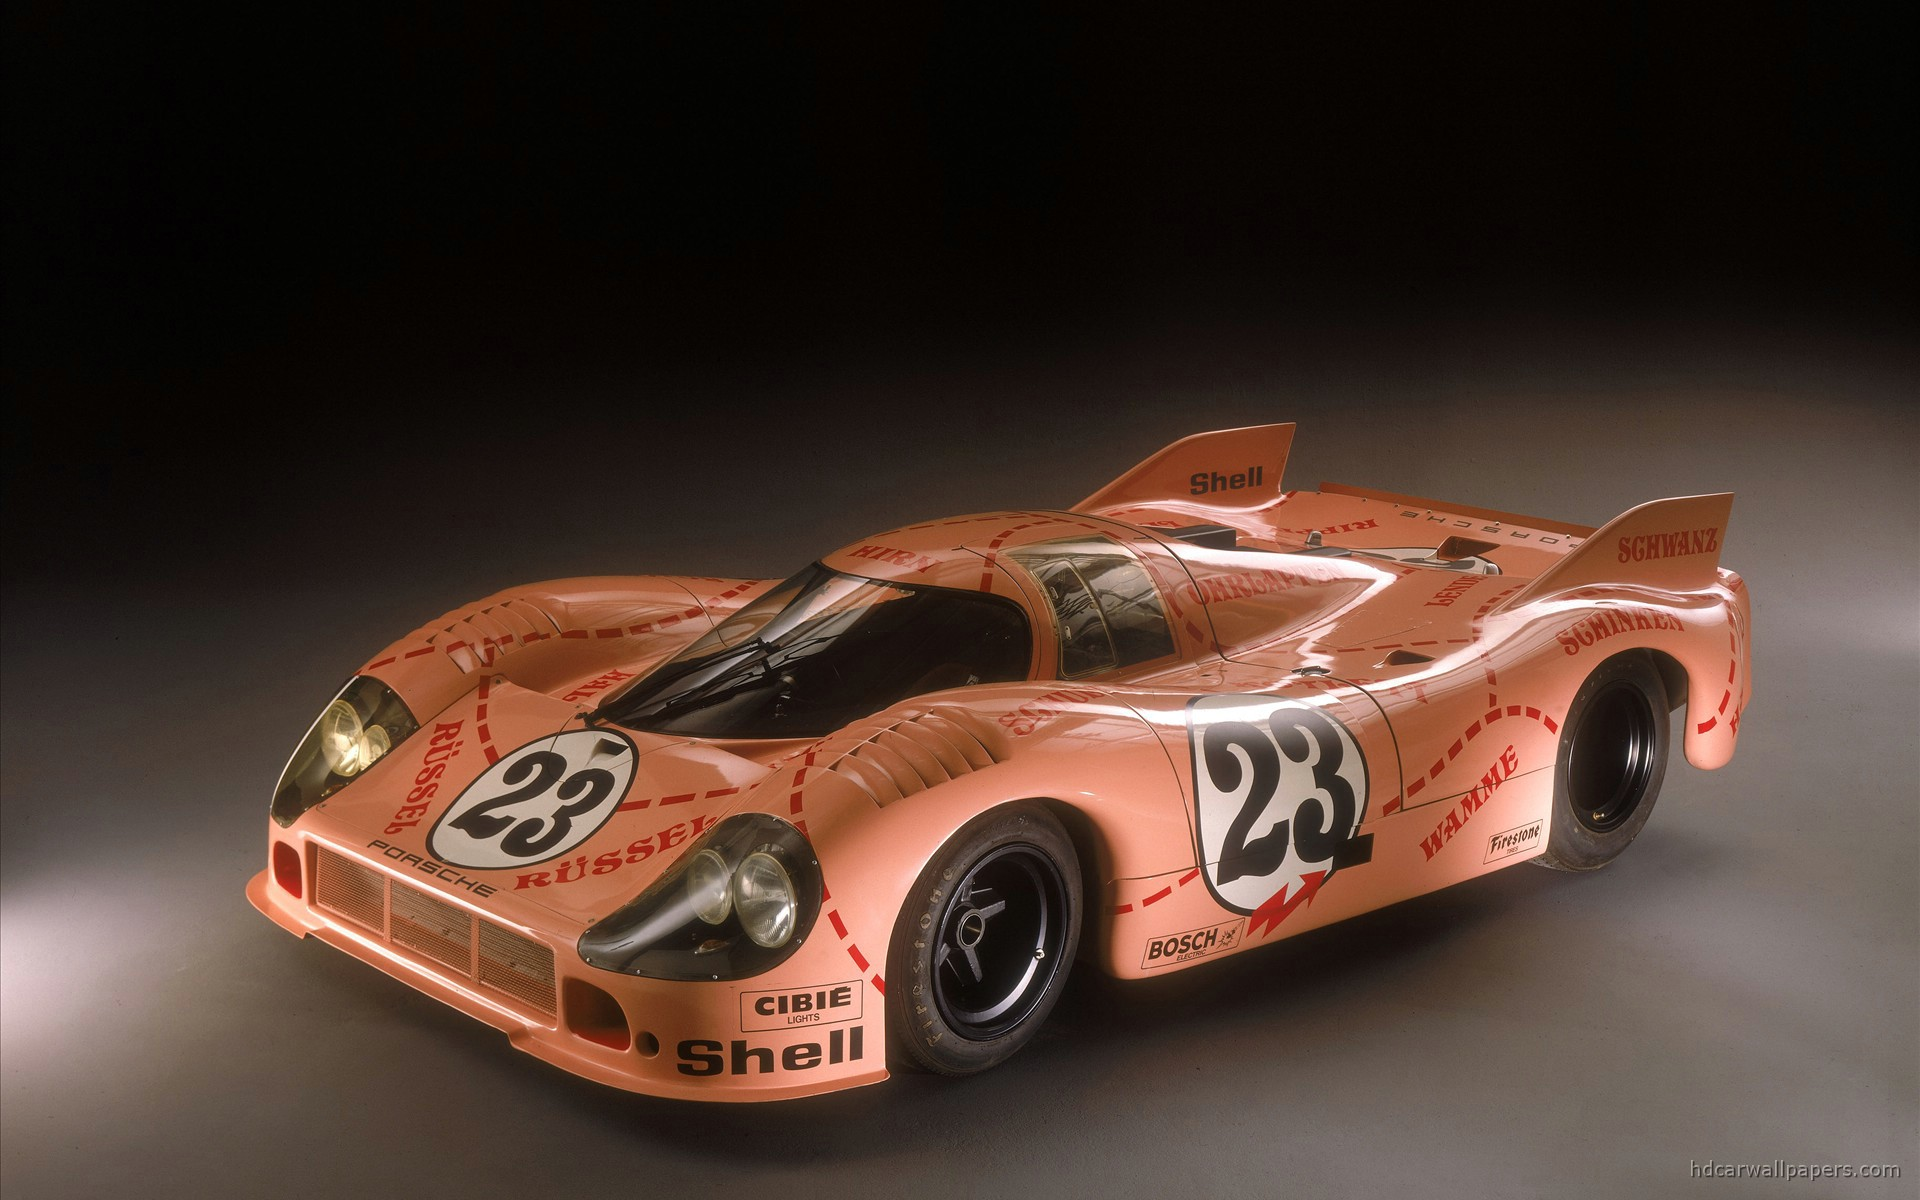 Porsche 917 Greatest Racing Car in History 254.96 Kb